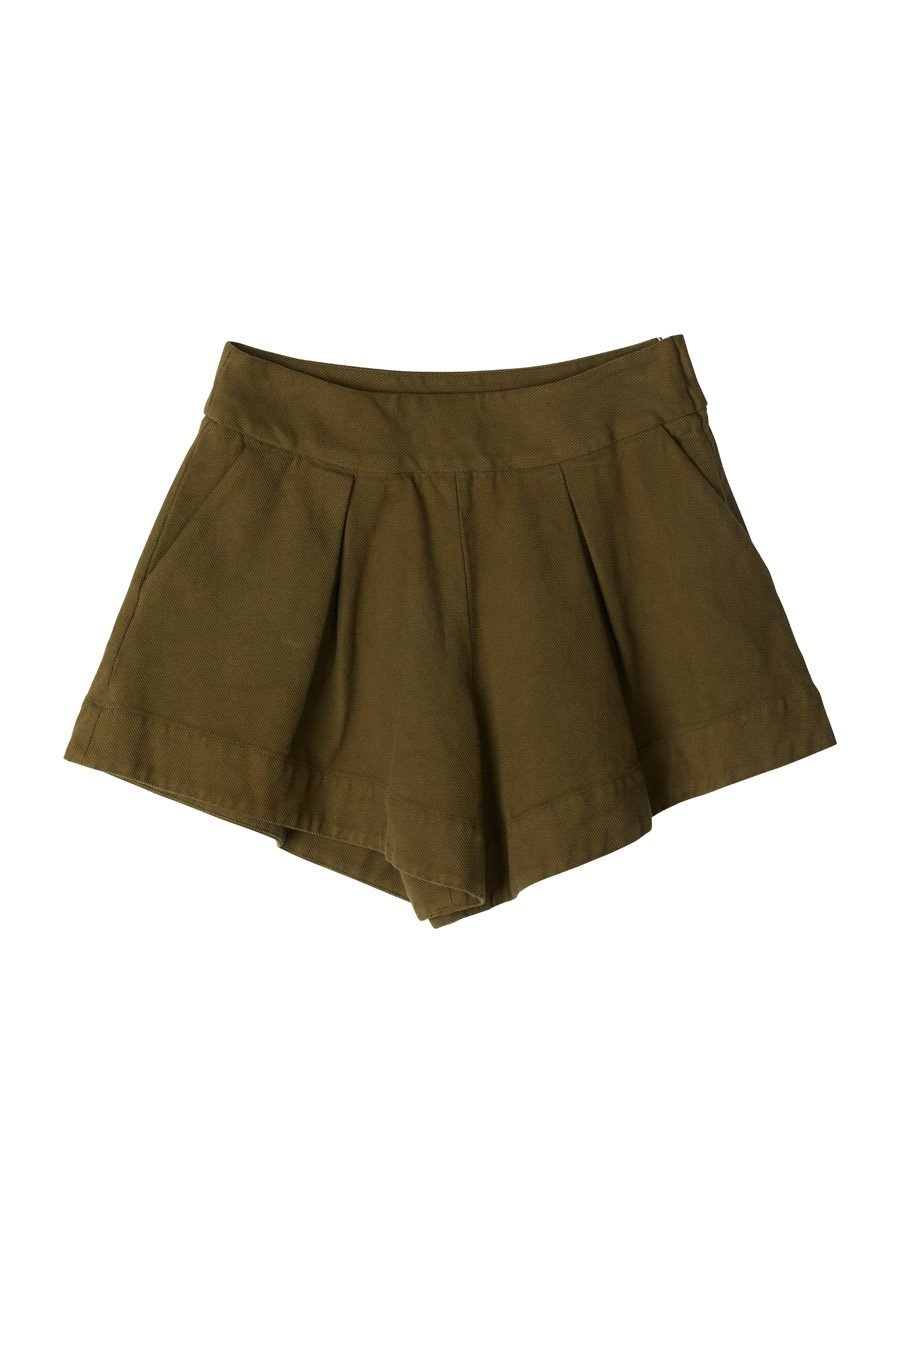 KYRIA SHORTS - ARMY GREEN Shorts Stylein